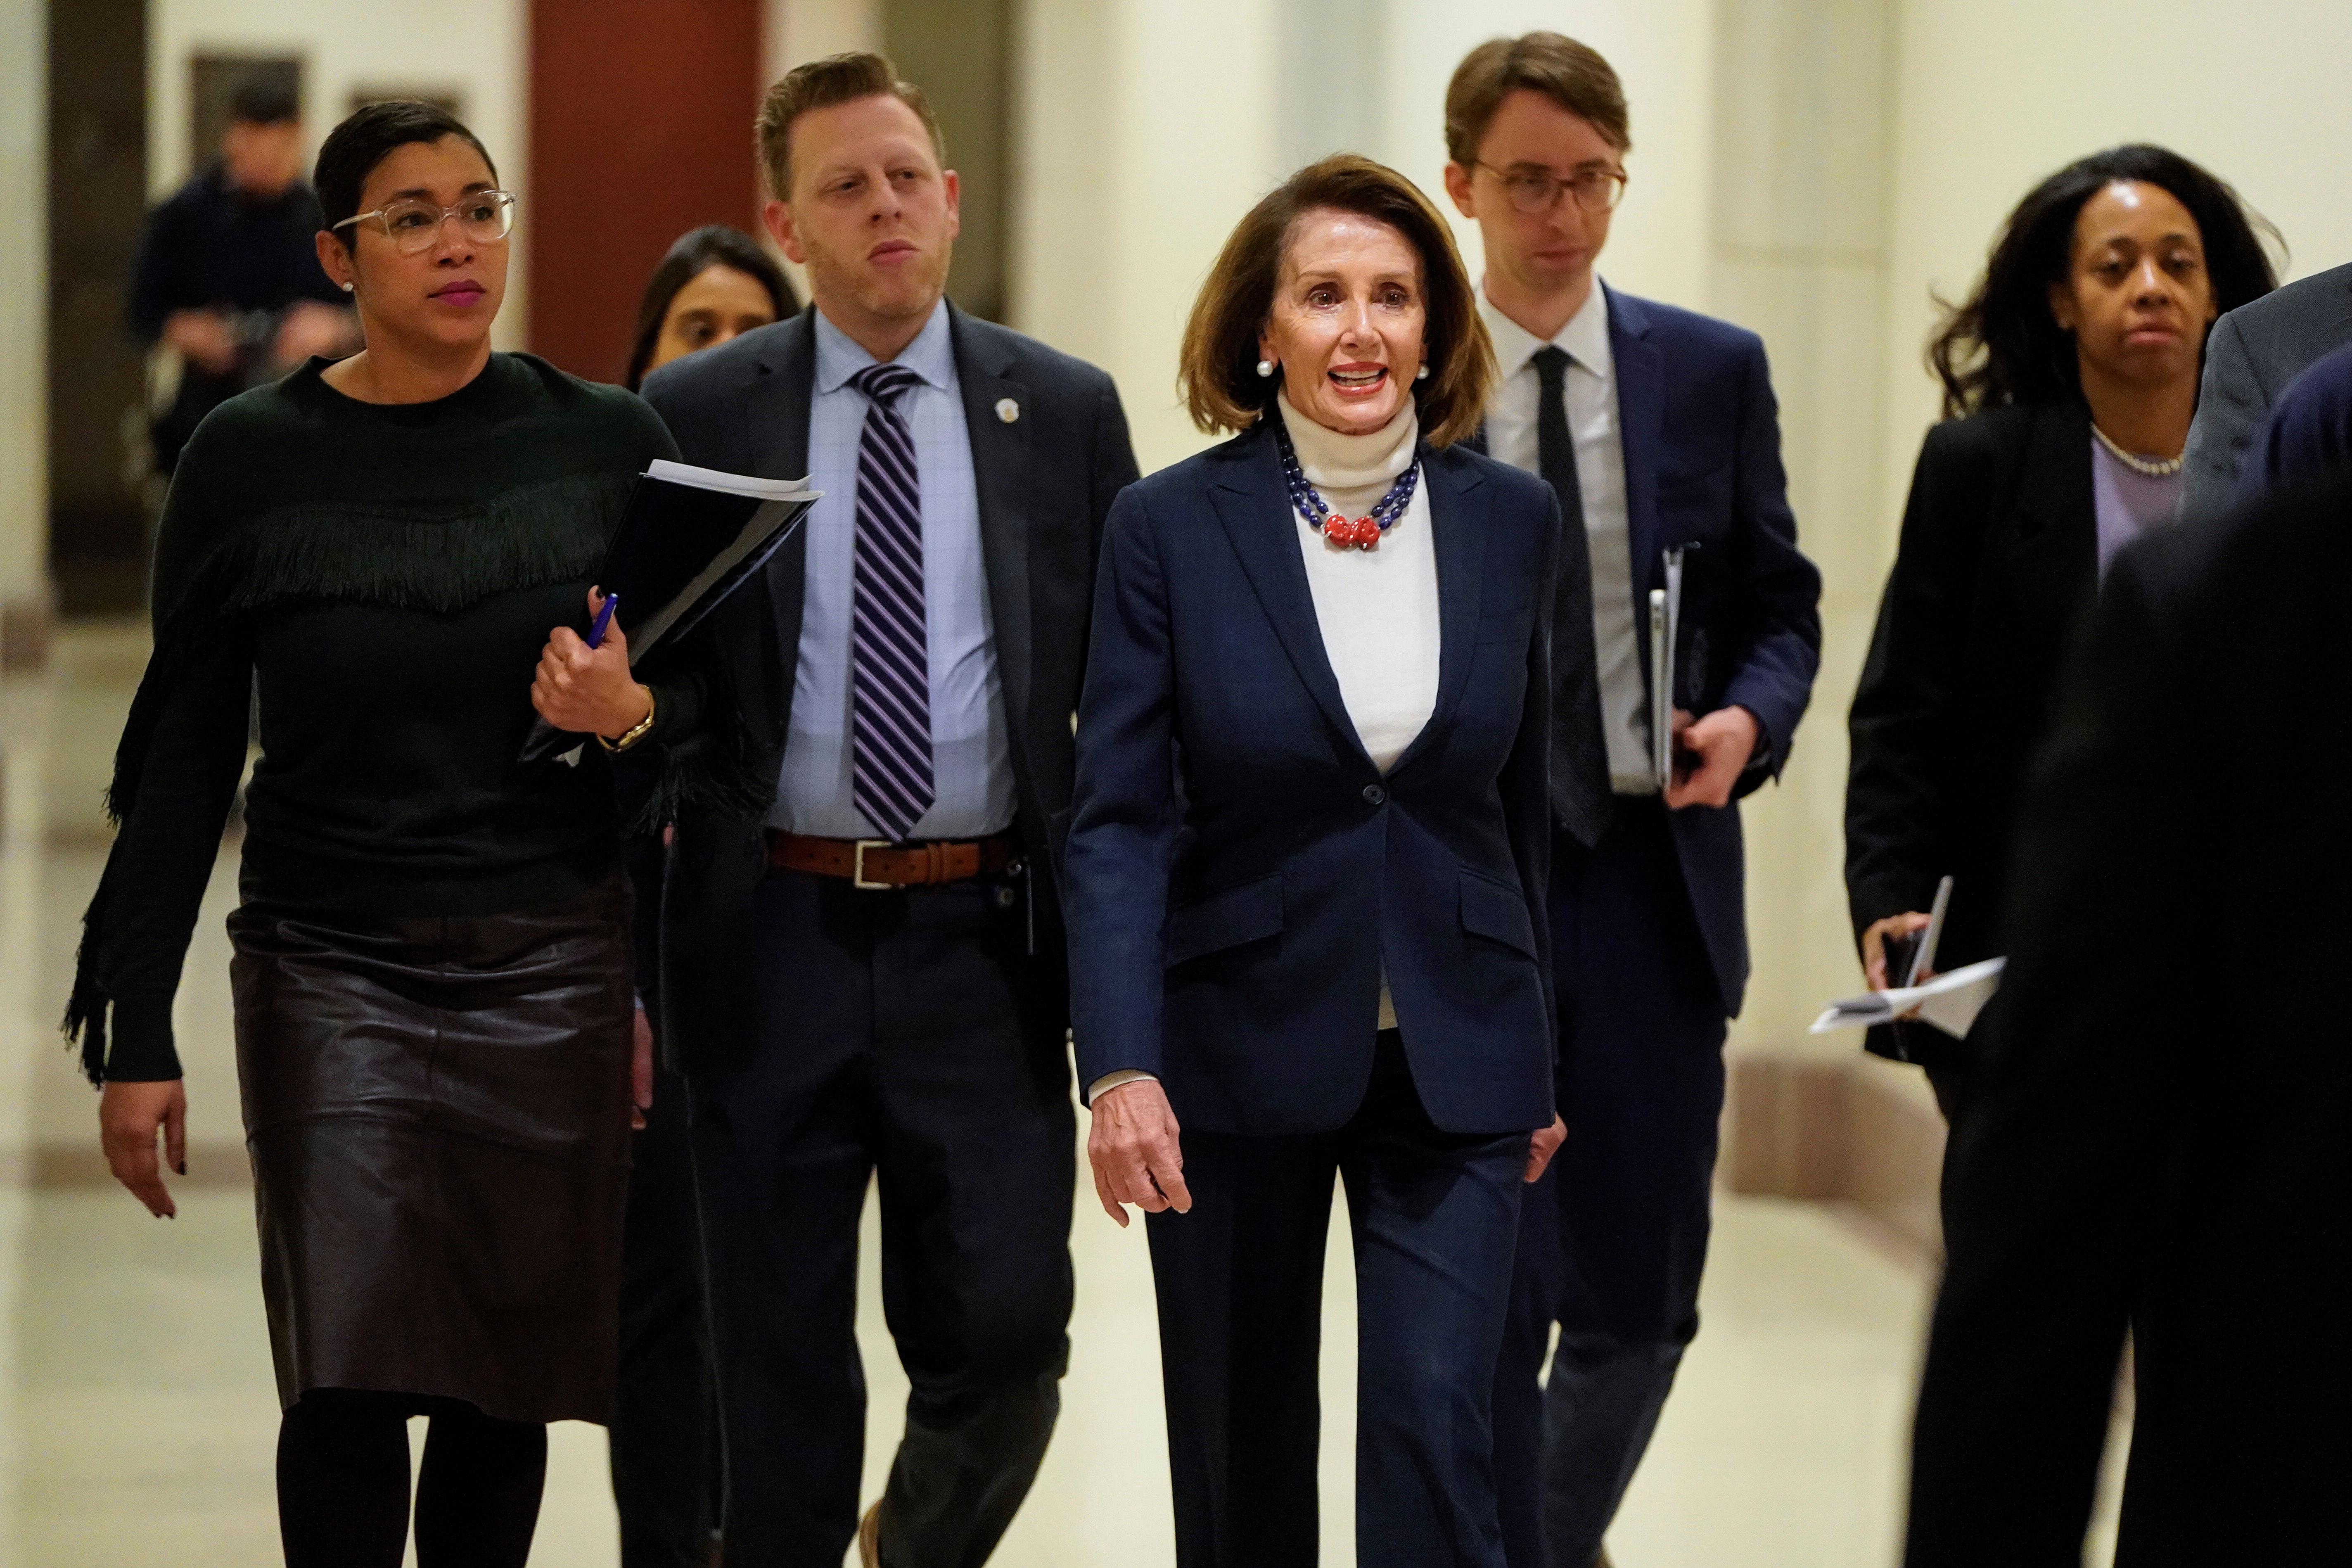 Speaker of the House Nancy Pelosi (D-CA) arrives for a press briefing on the 27th day of a partial government shutdown on Capitol Hill in Washington